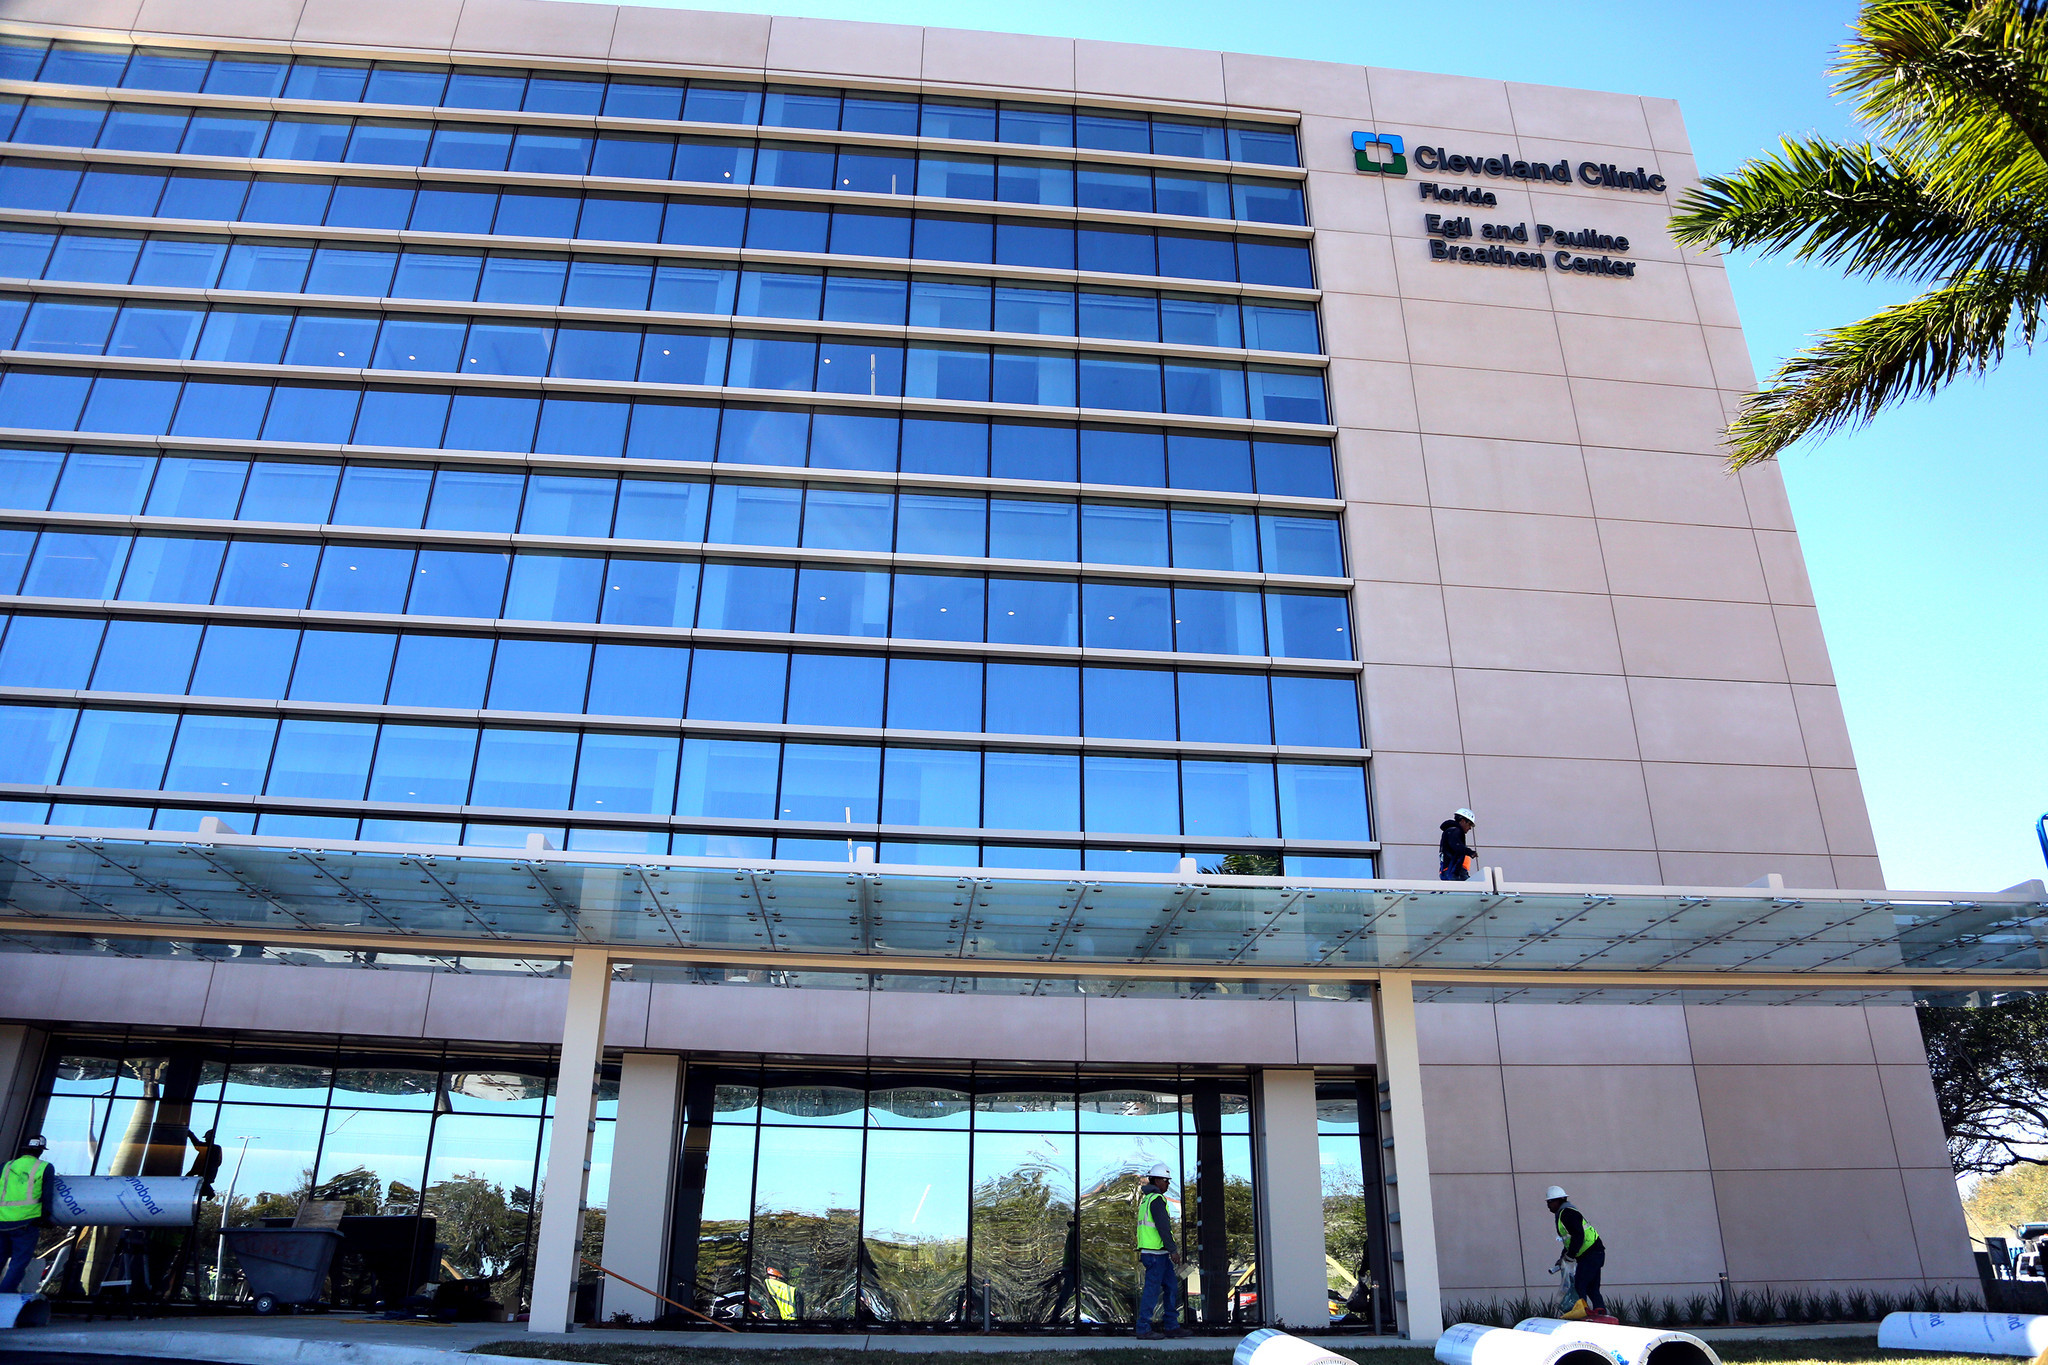 Cleveland Clinic Acquires Cardiology Ociates Of Palm Beach Sun Sentinel